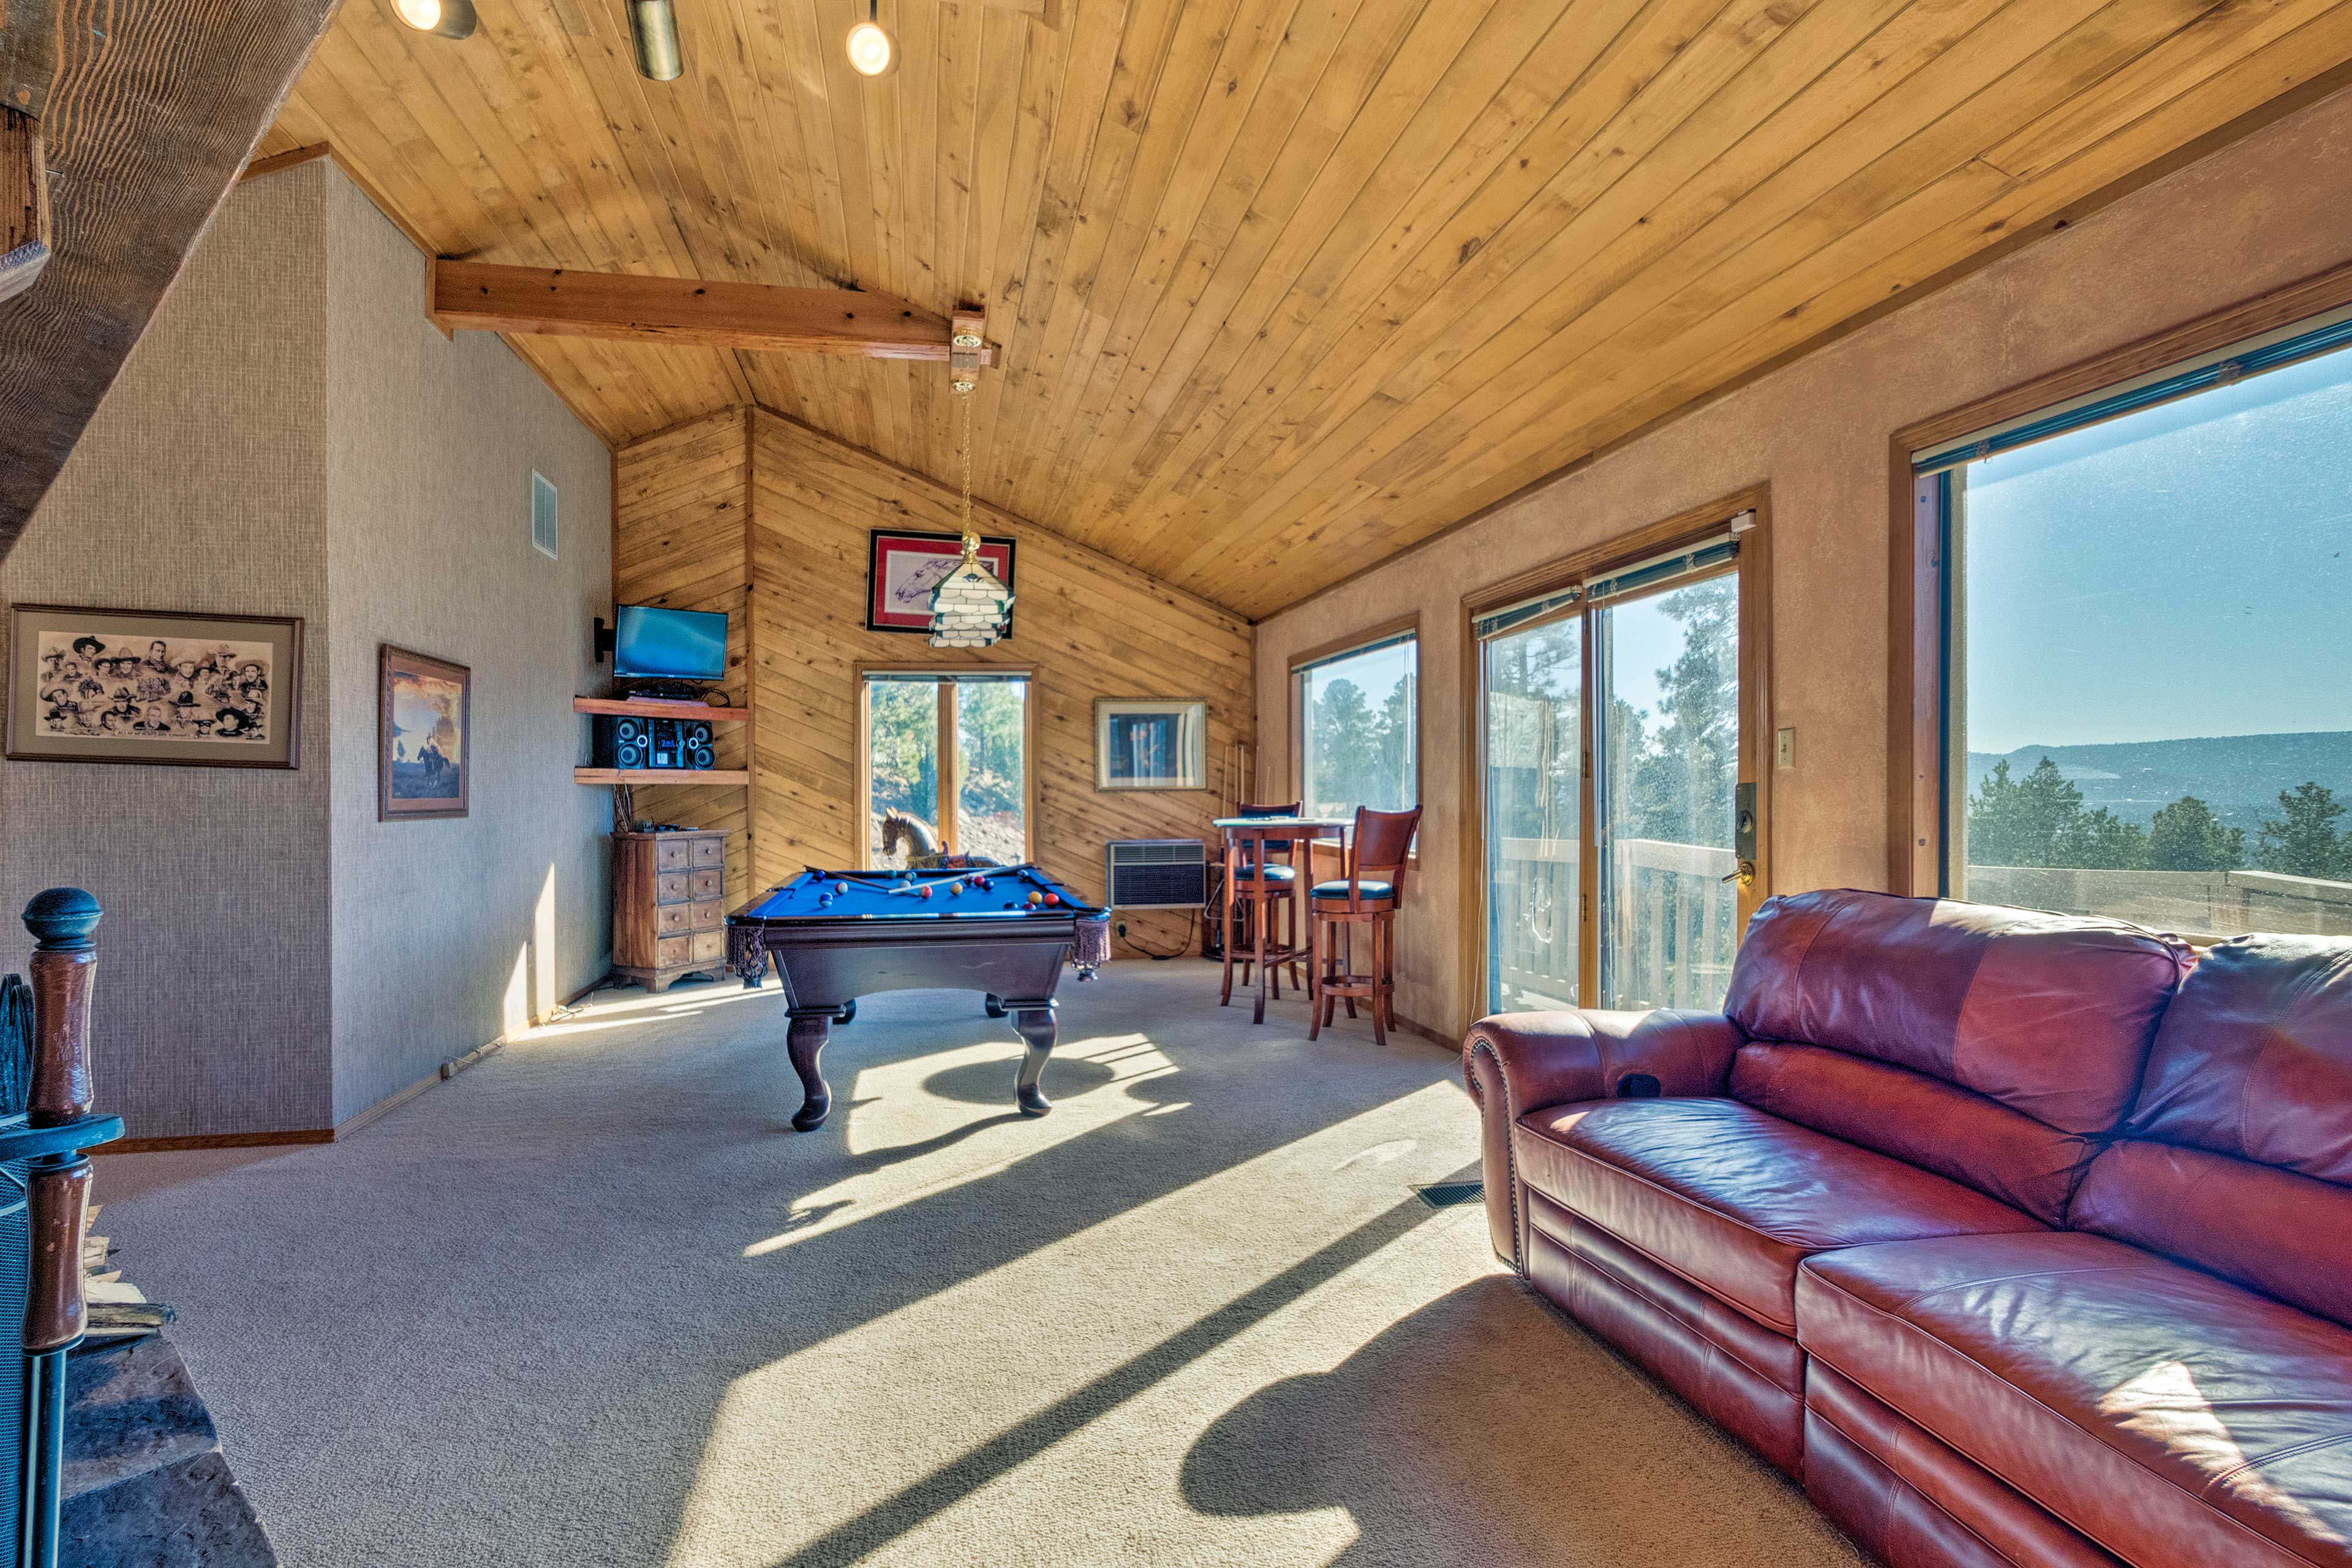 Upstairs, the game loft boasts stunning views and deck access.